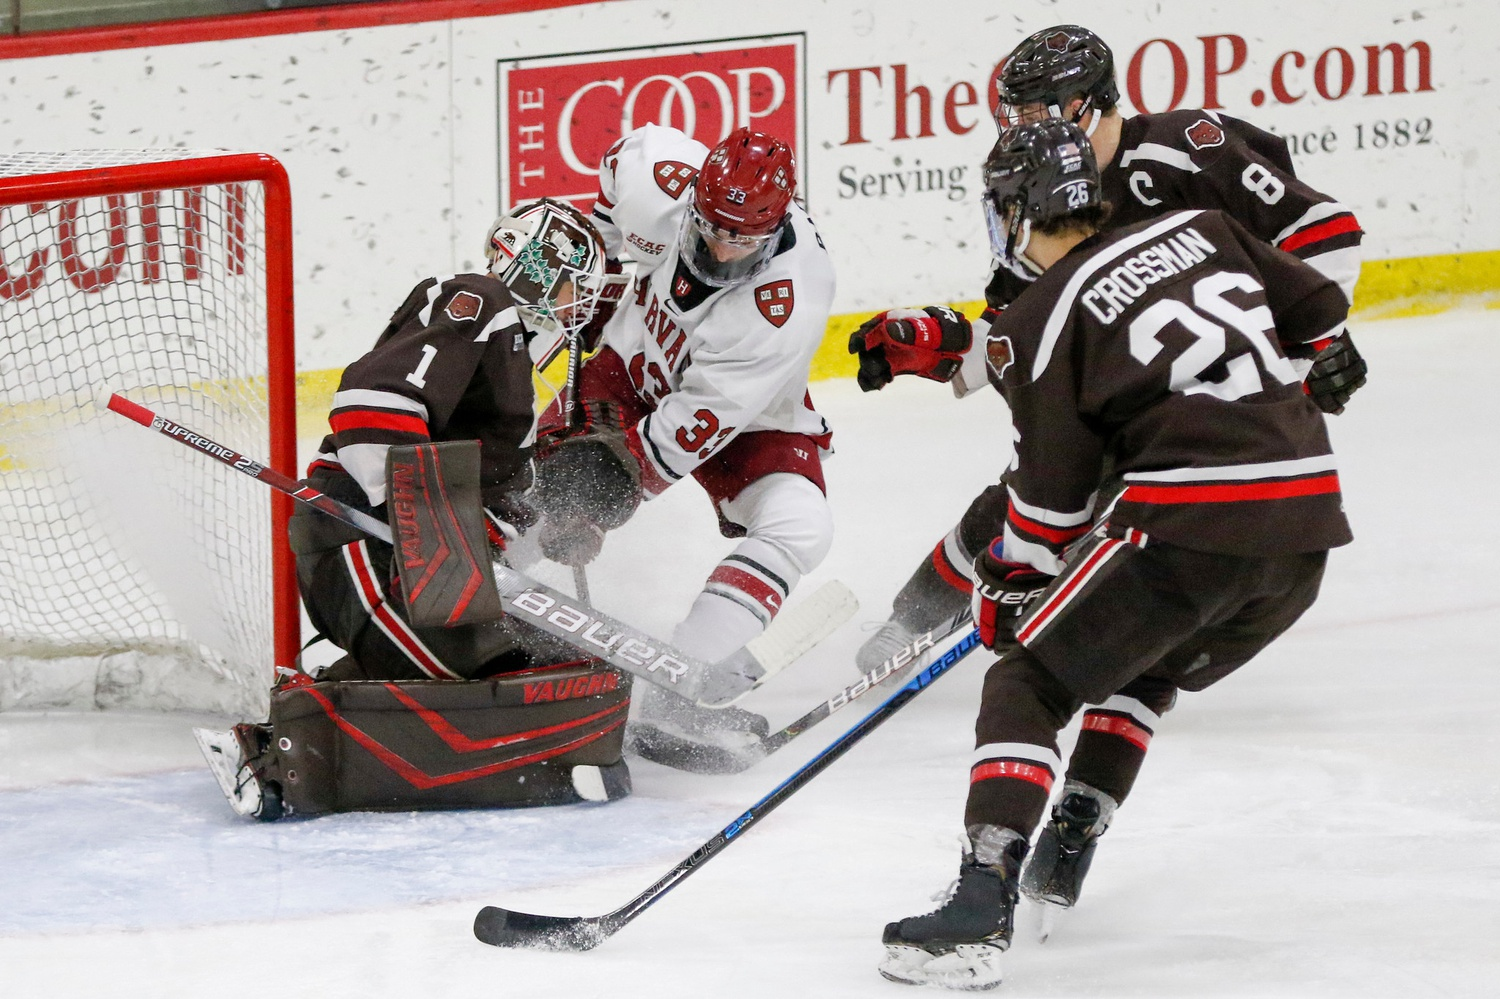 Despite 31 shots against Brown goaltender Gavin Nieto, Harvard broke through only once. A five-minute major penalty proved to be a crucial missed opportunity to cash in for the Crimson.